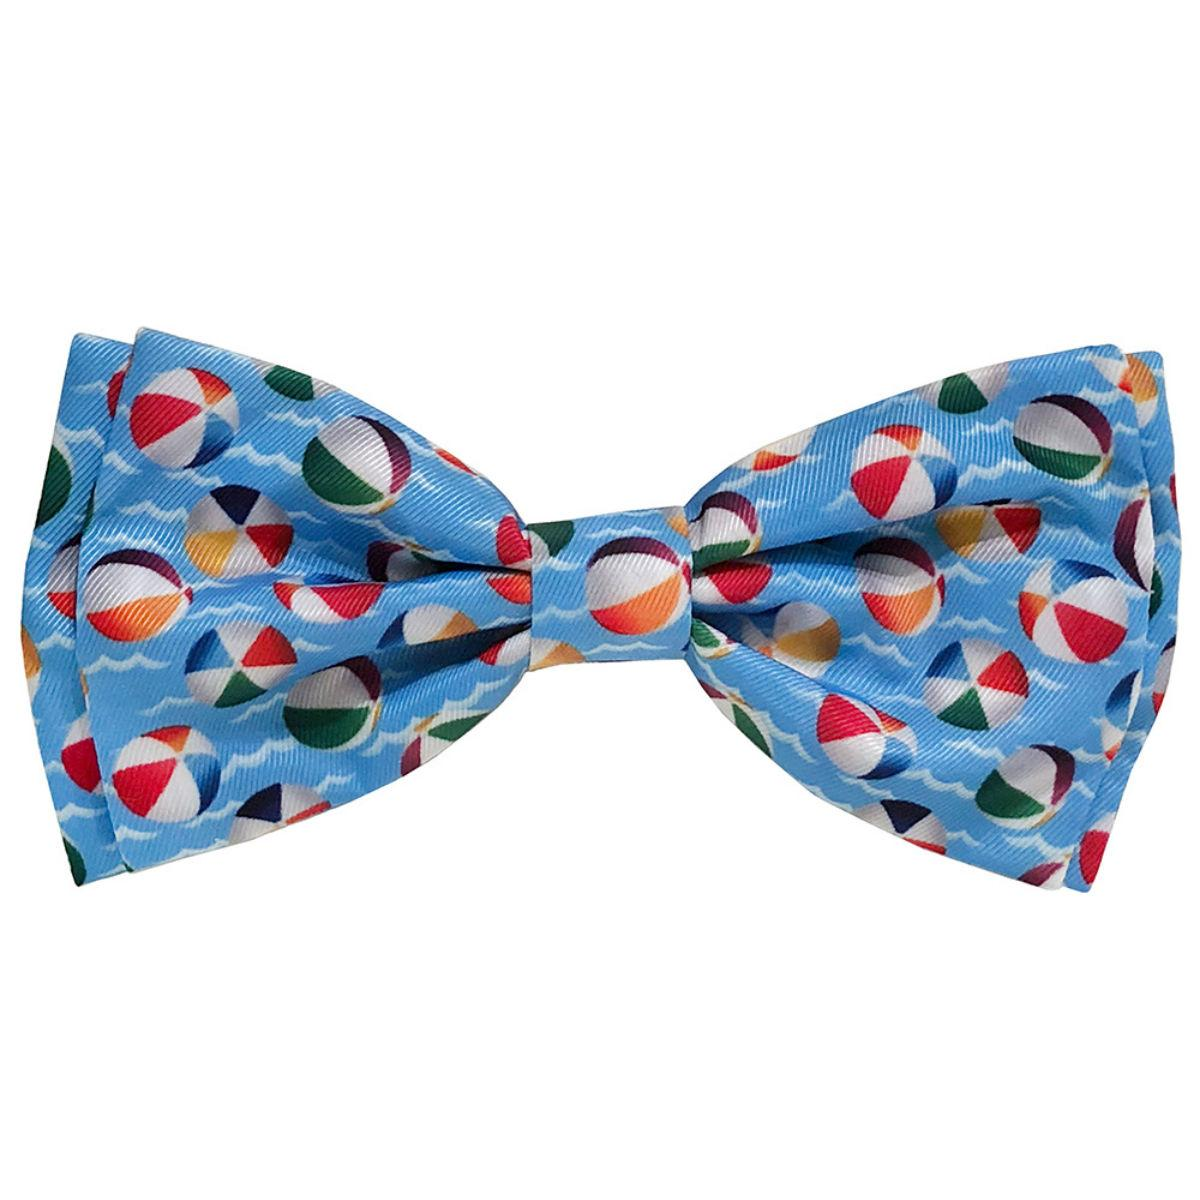 Huxley & Kent Dog and Cat Bow Tie Collar Attachment - Pool Party